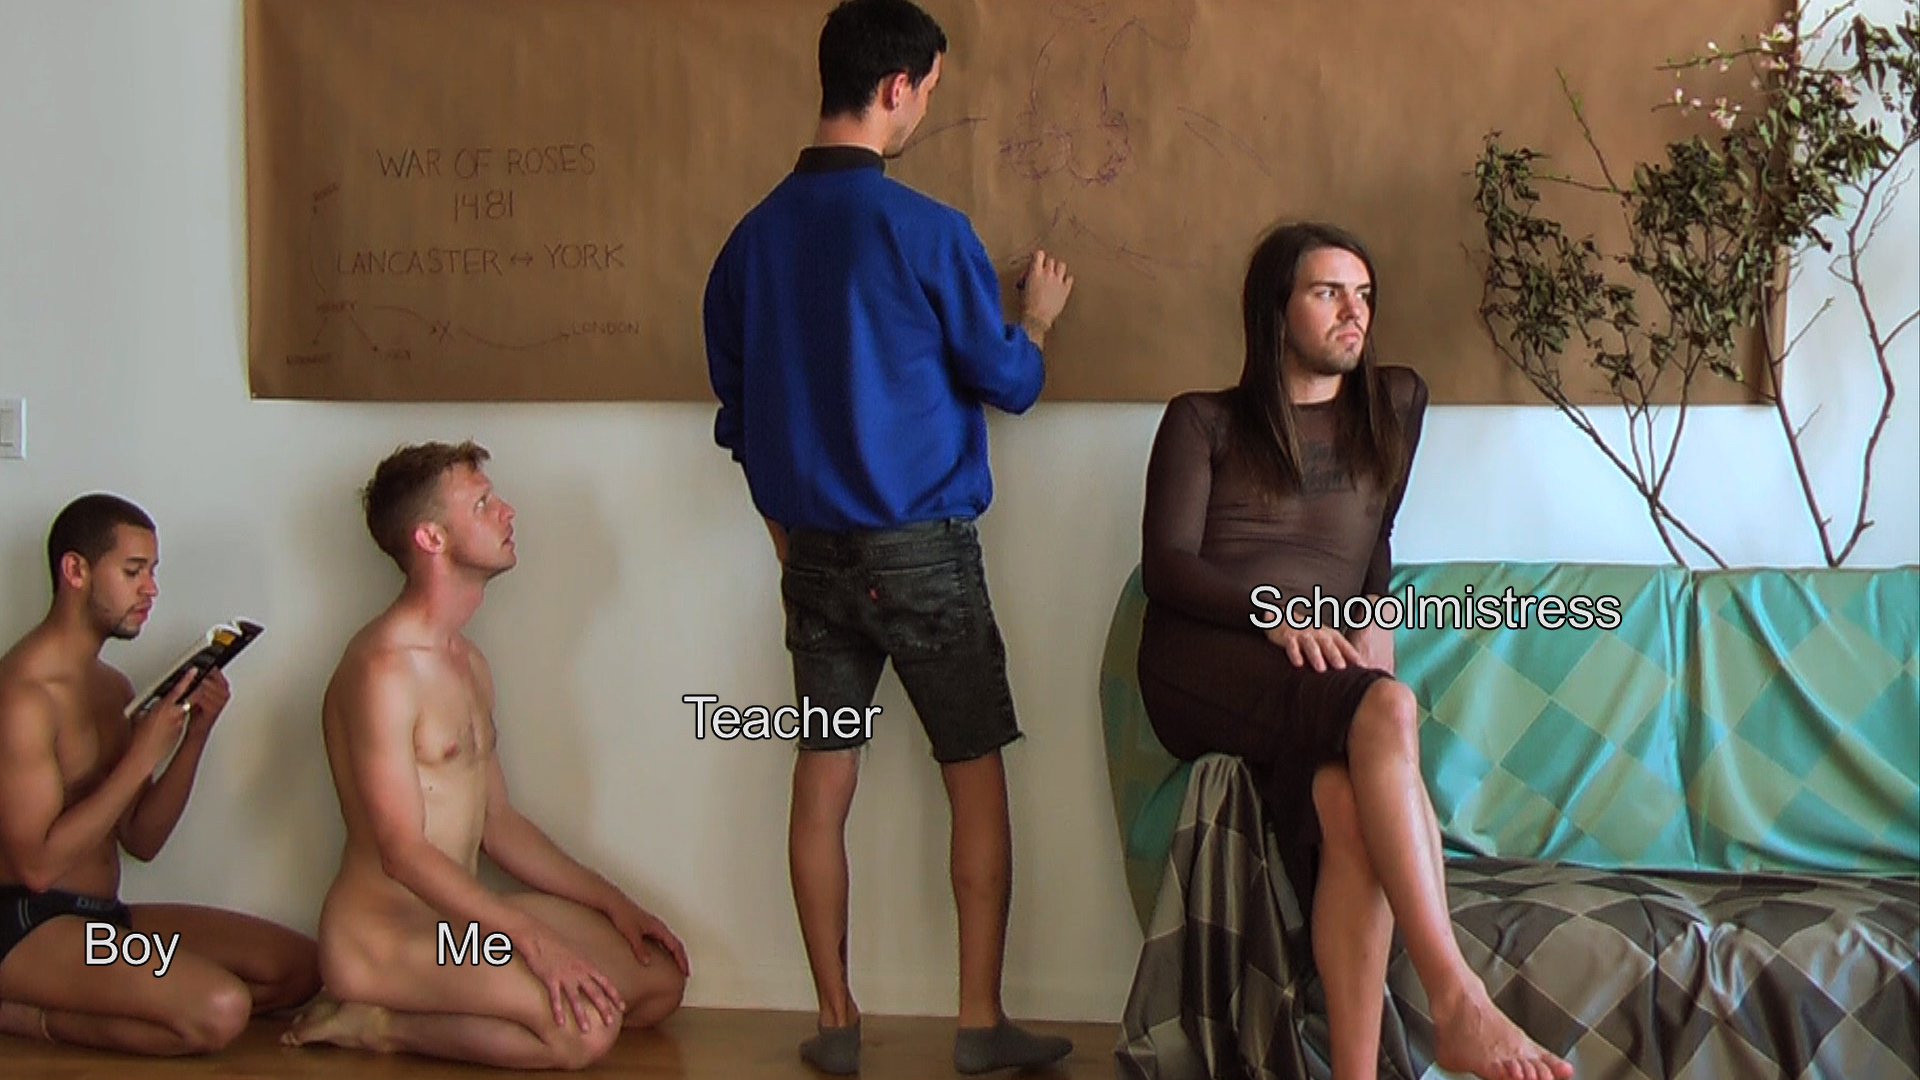 video still of a cast of characters including Boy, Me, Teacher, and Schoolmistress